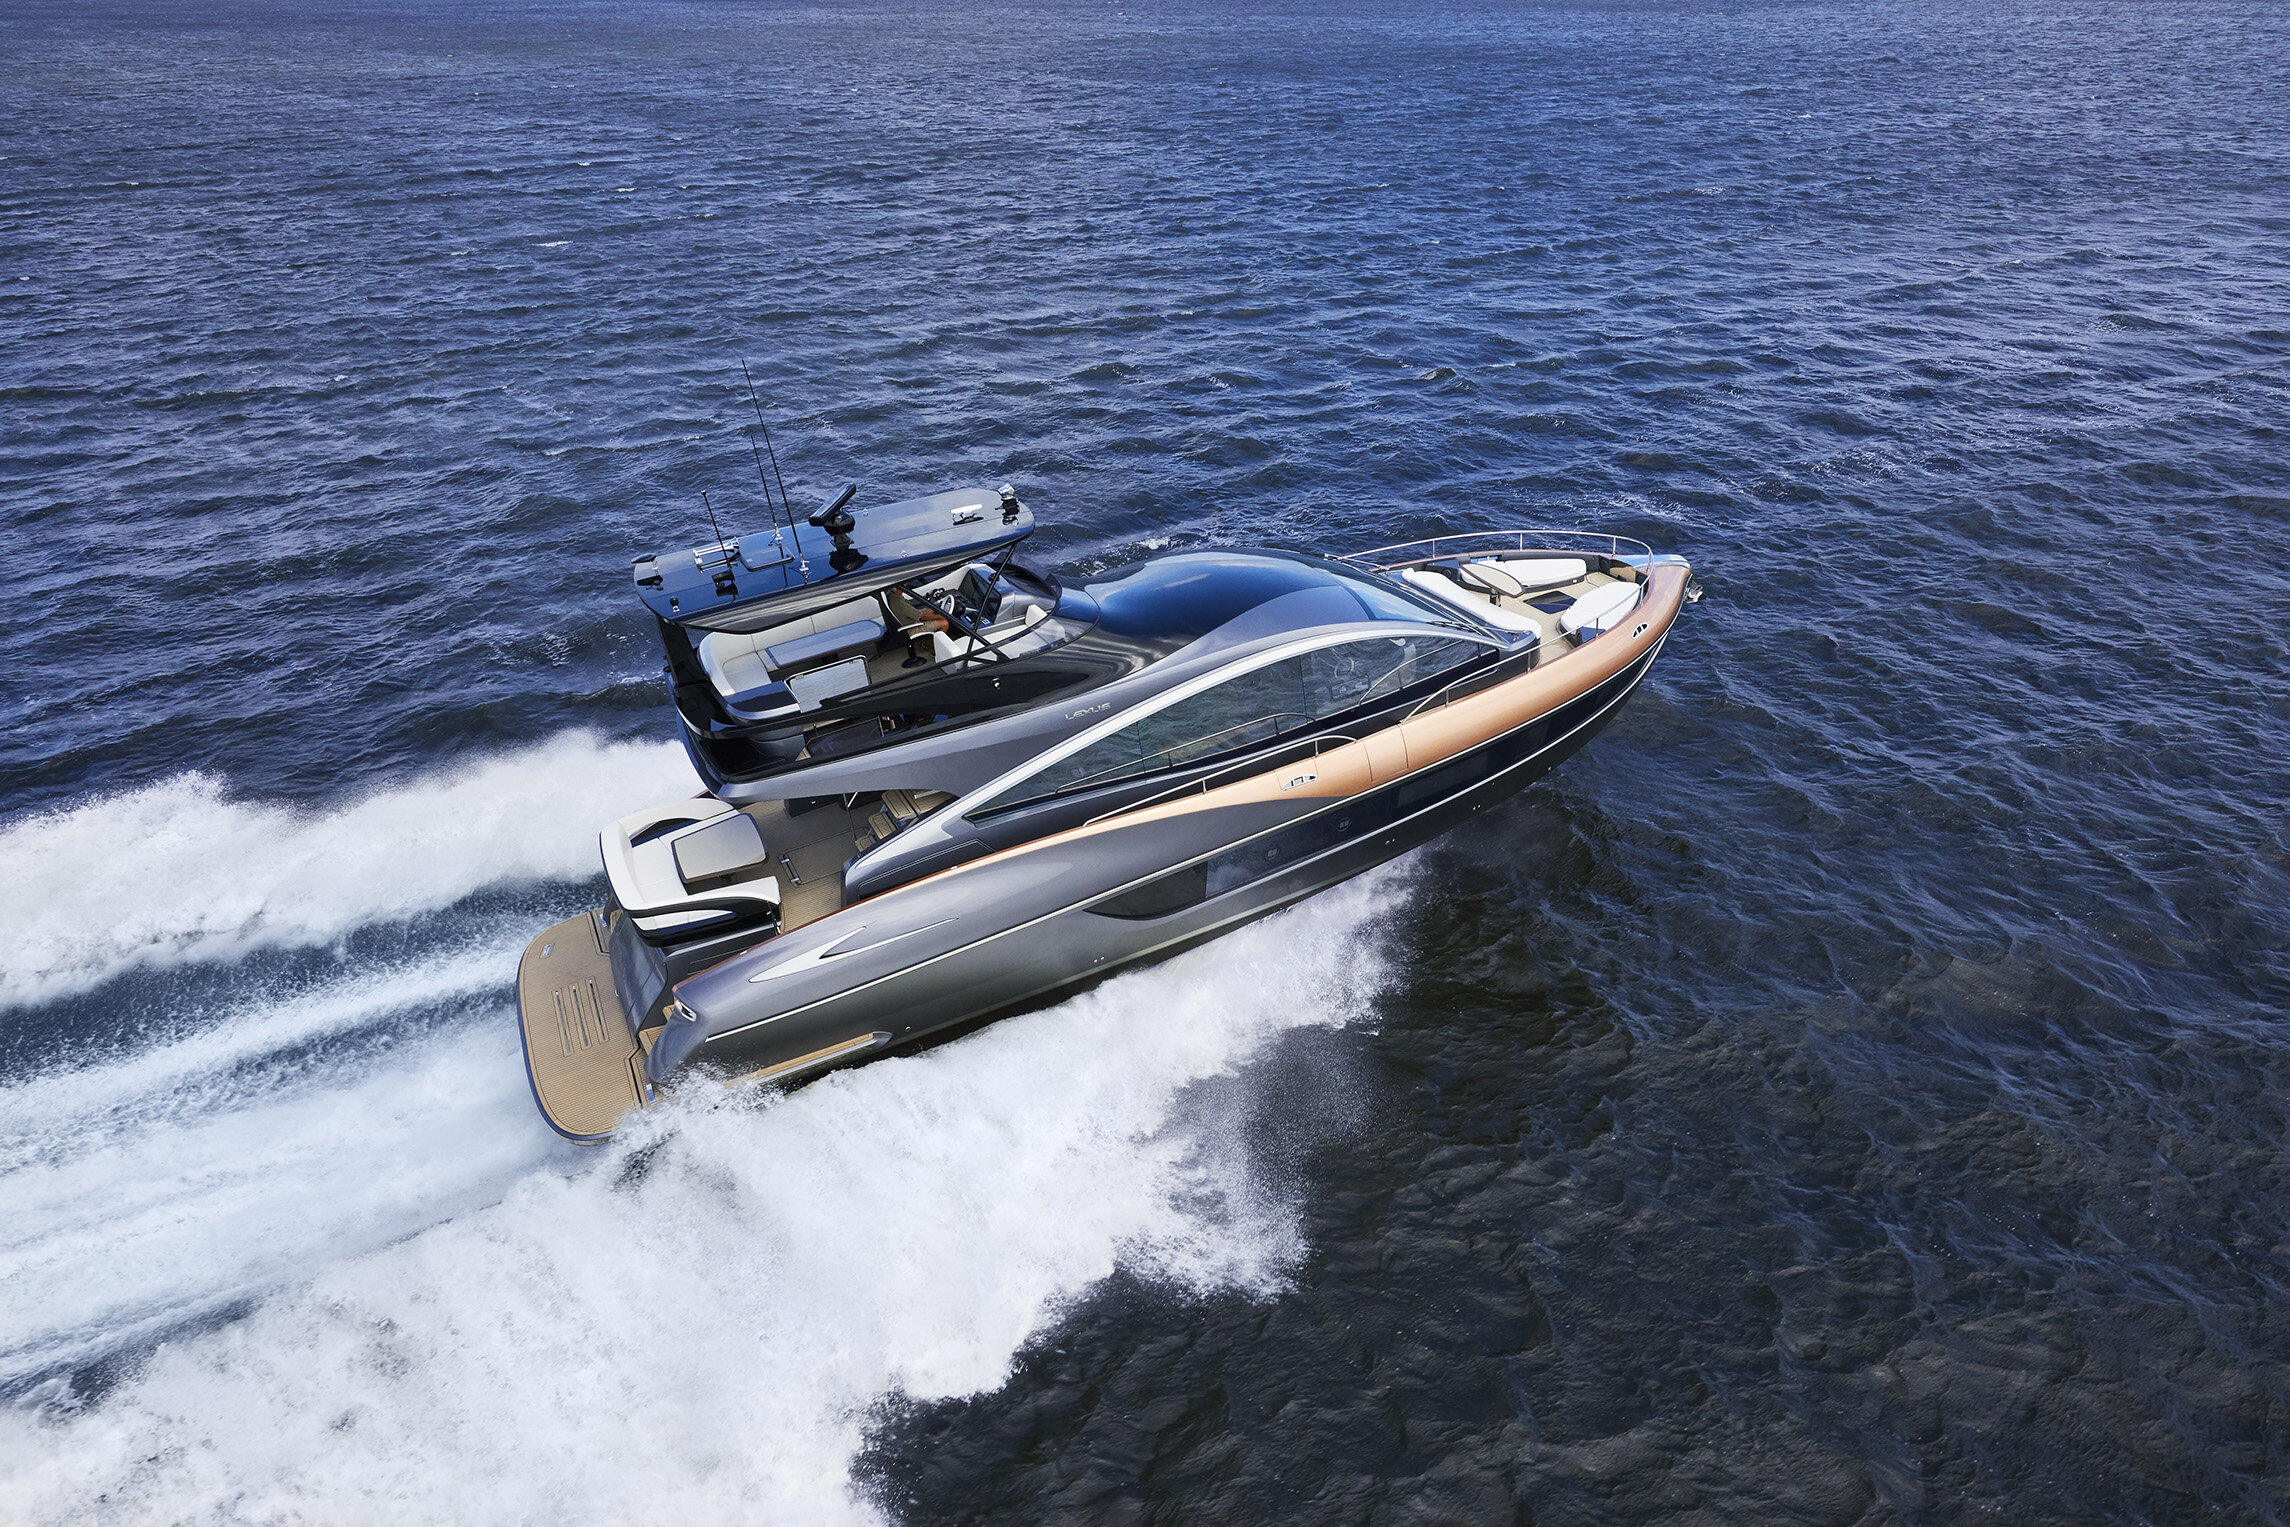 IMAGE_Lexus Yacht LY650 globally premiered yesterday in Florida (002).jpg